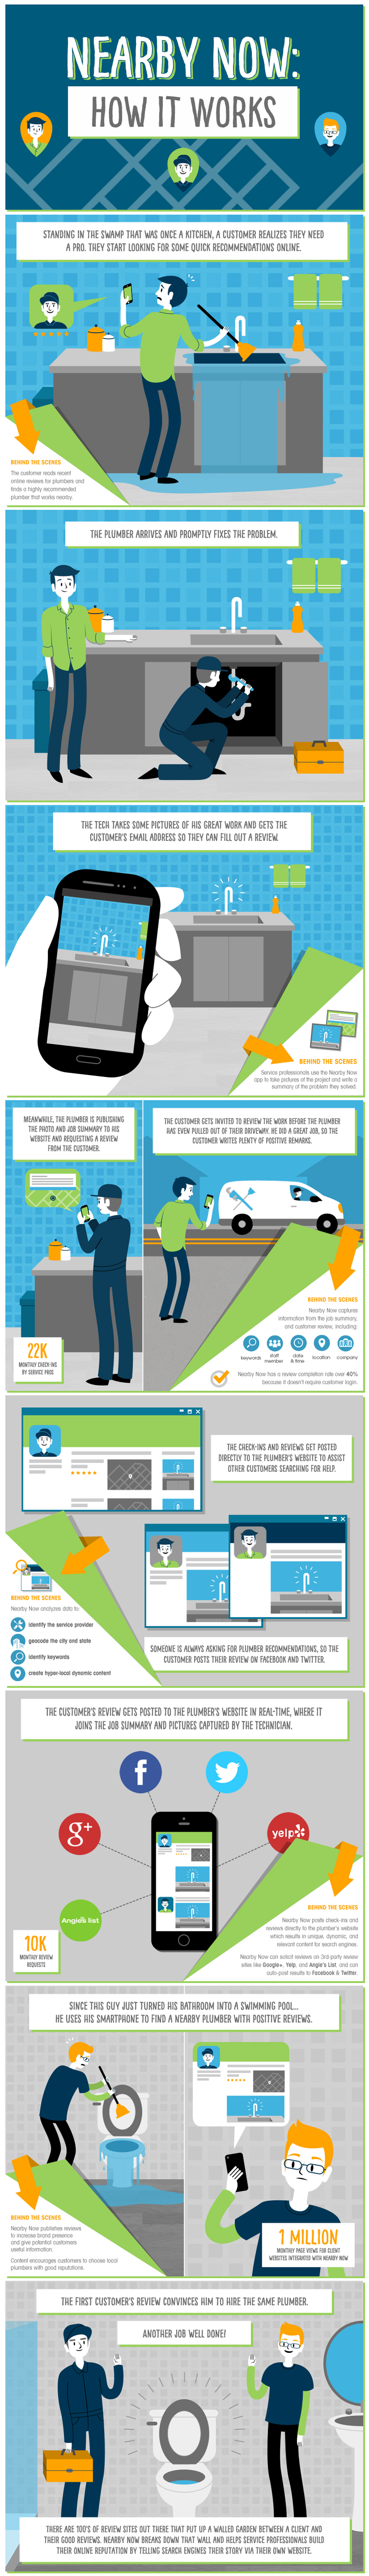 How It Works - Nearby Now Infographic